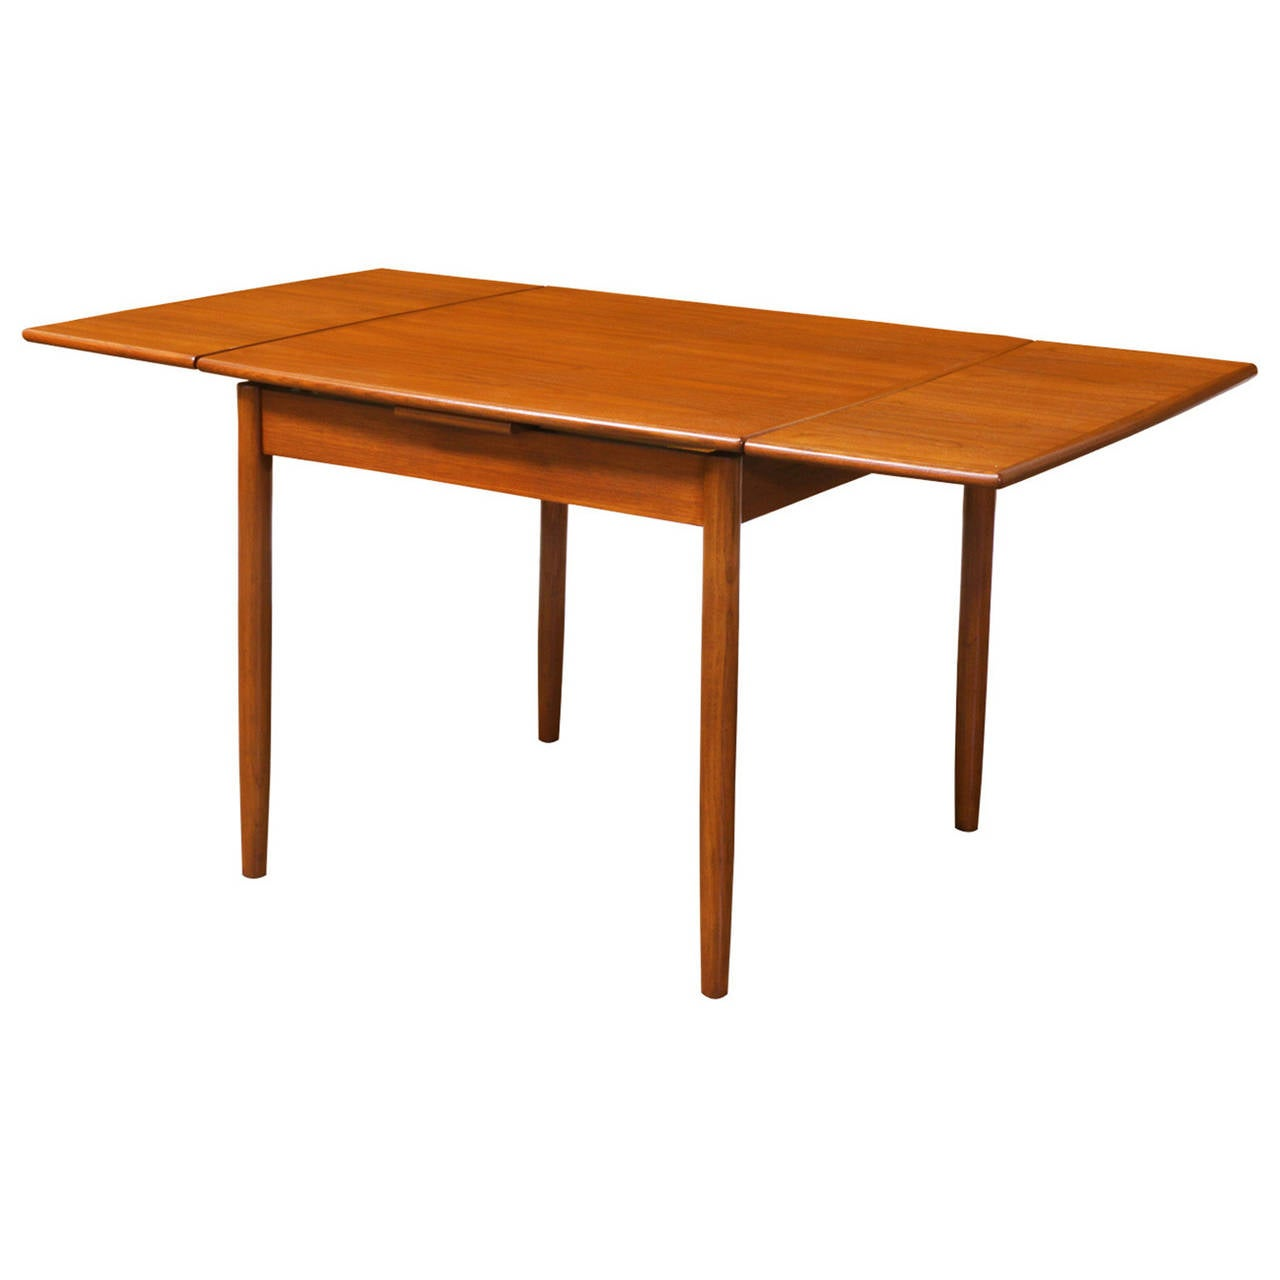 Danish Modern Teak Square Draw Leaf Dining Table At 1stdibs